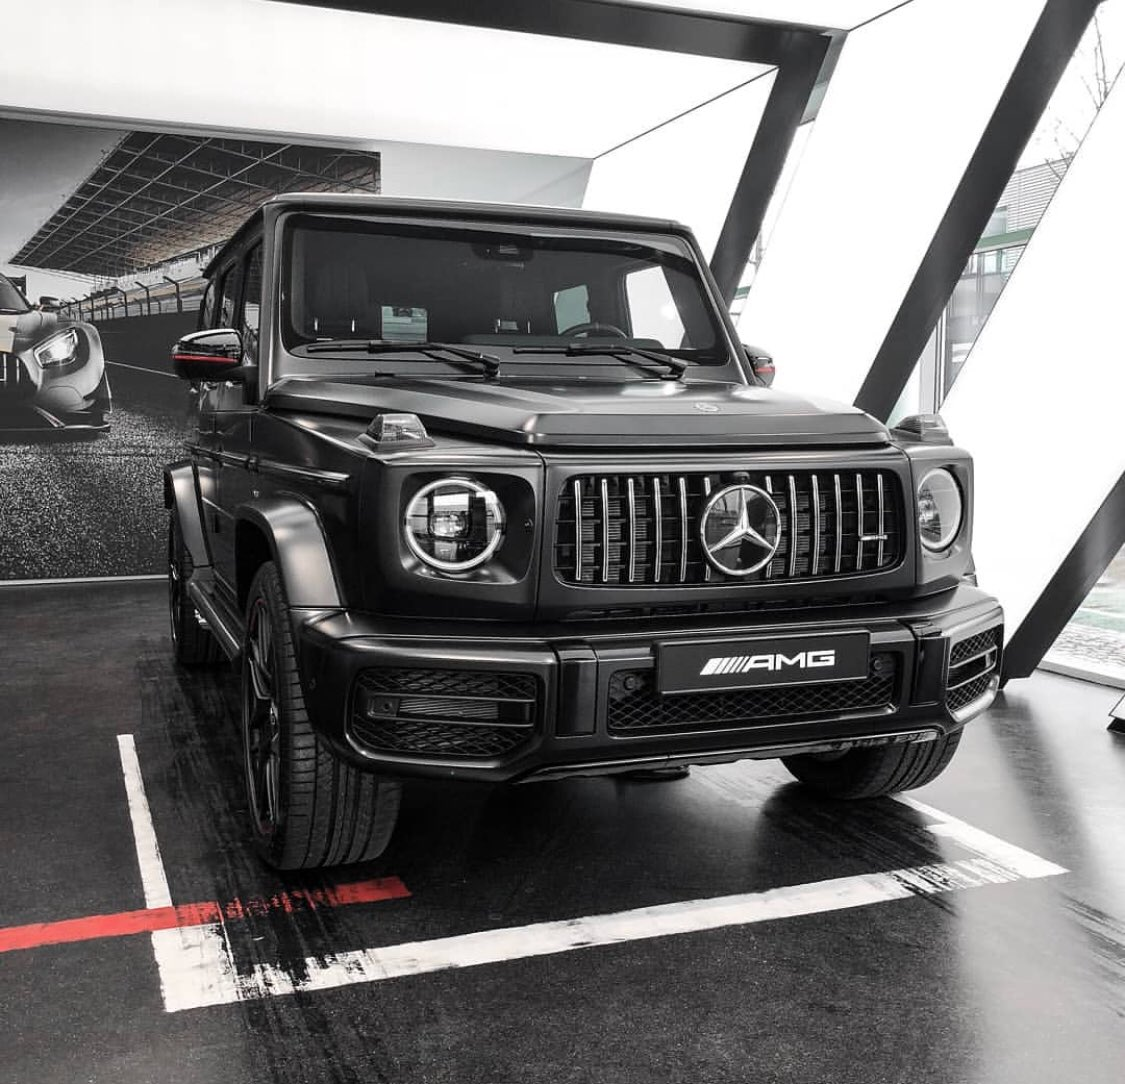 With beautiful additions to the interior and exterior, the Mercedes-AMG G 63 always demands attention from the showroom floor in Affalterbach. #MercedesAMG  #G63 #StrongerThanTime #AMG #DrivingPerformance #Power  #Mercedes #AMG #AMGShowroom via @MercedesAMG @MercedesAMGF1<br>http://pic.twitter.com/ndsqjukgZx